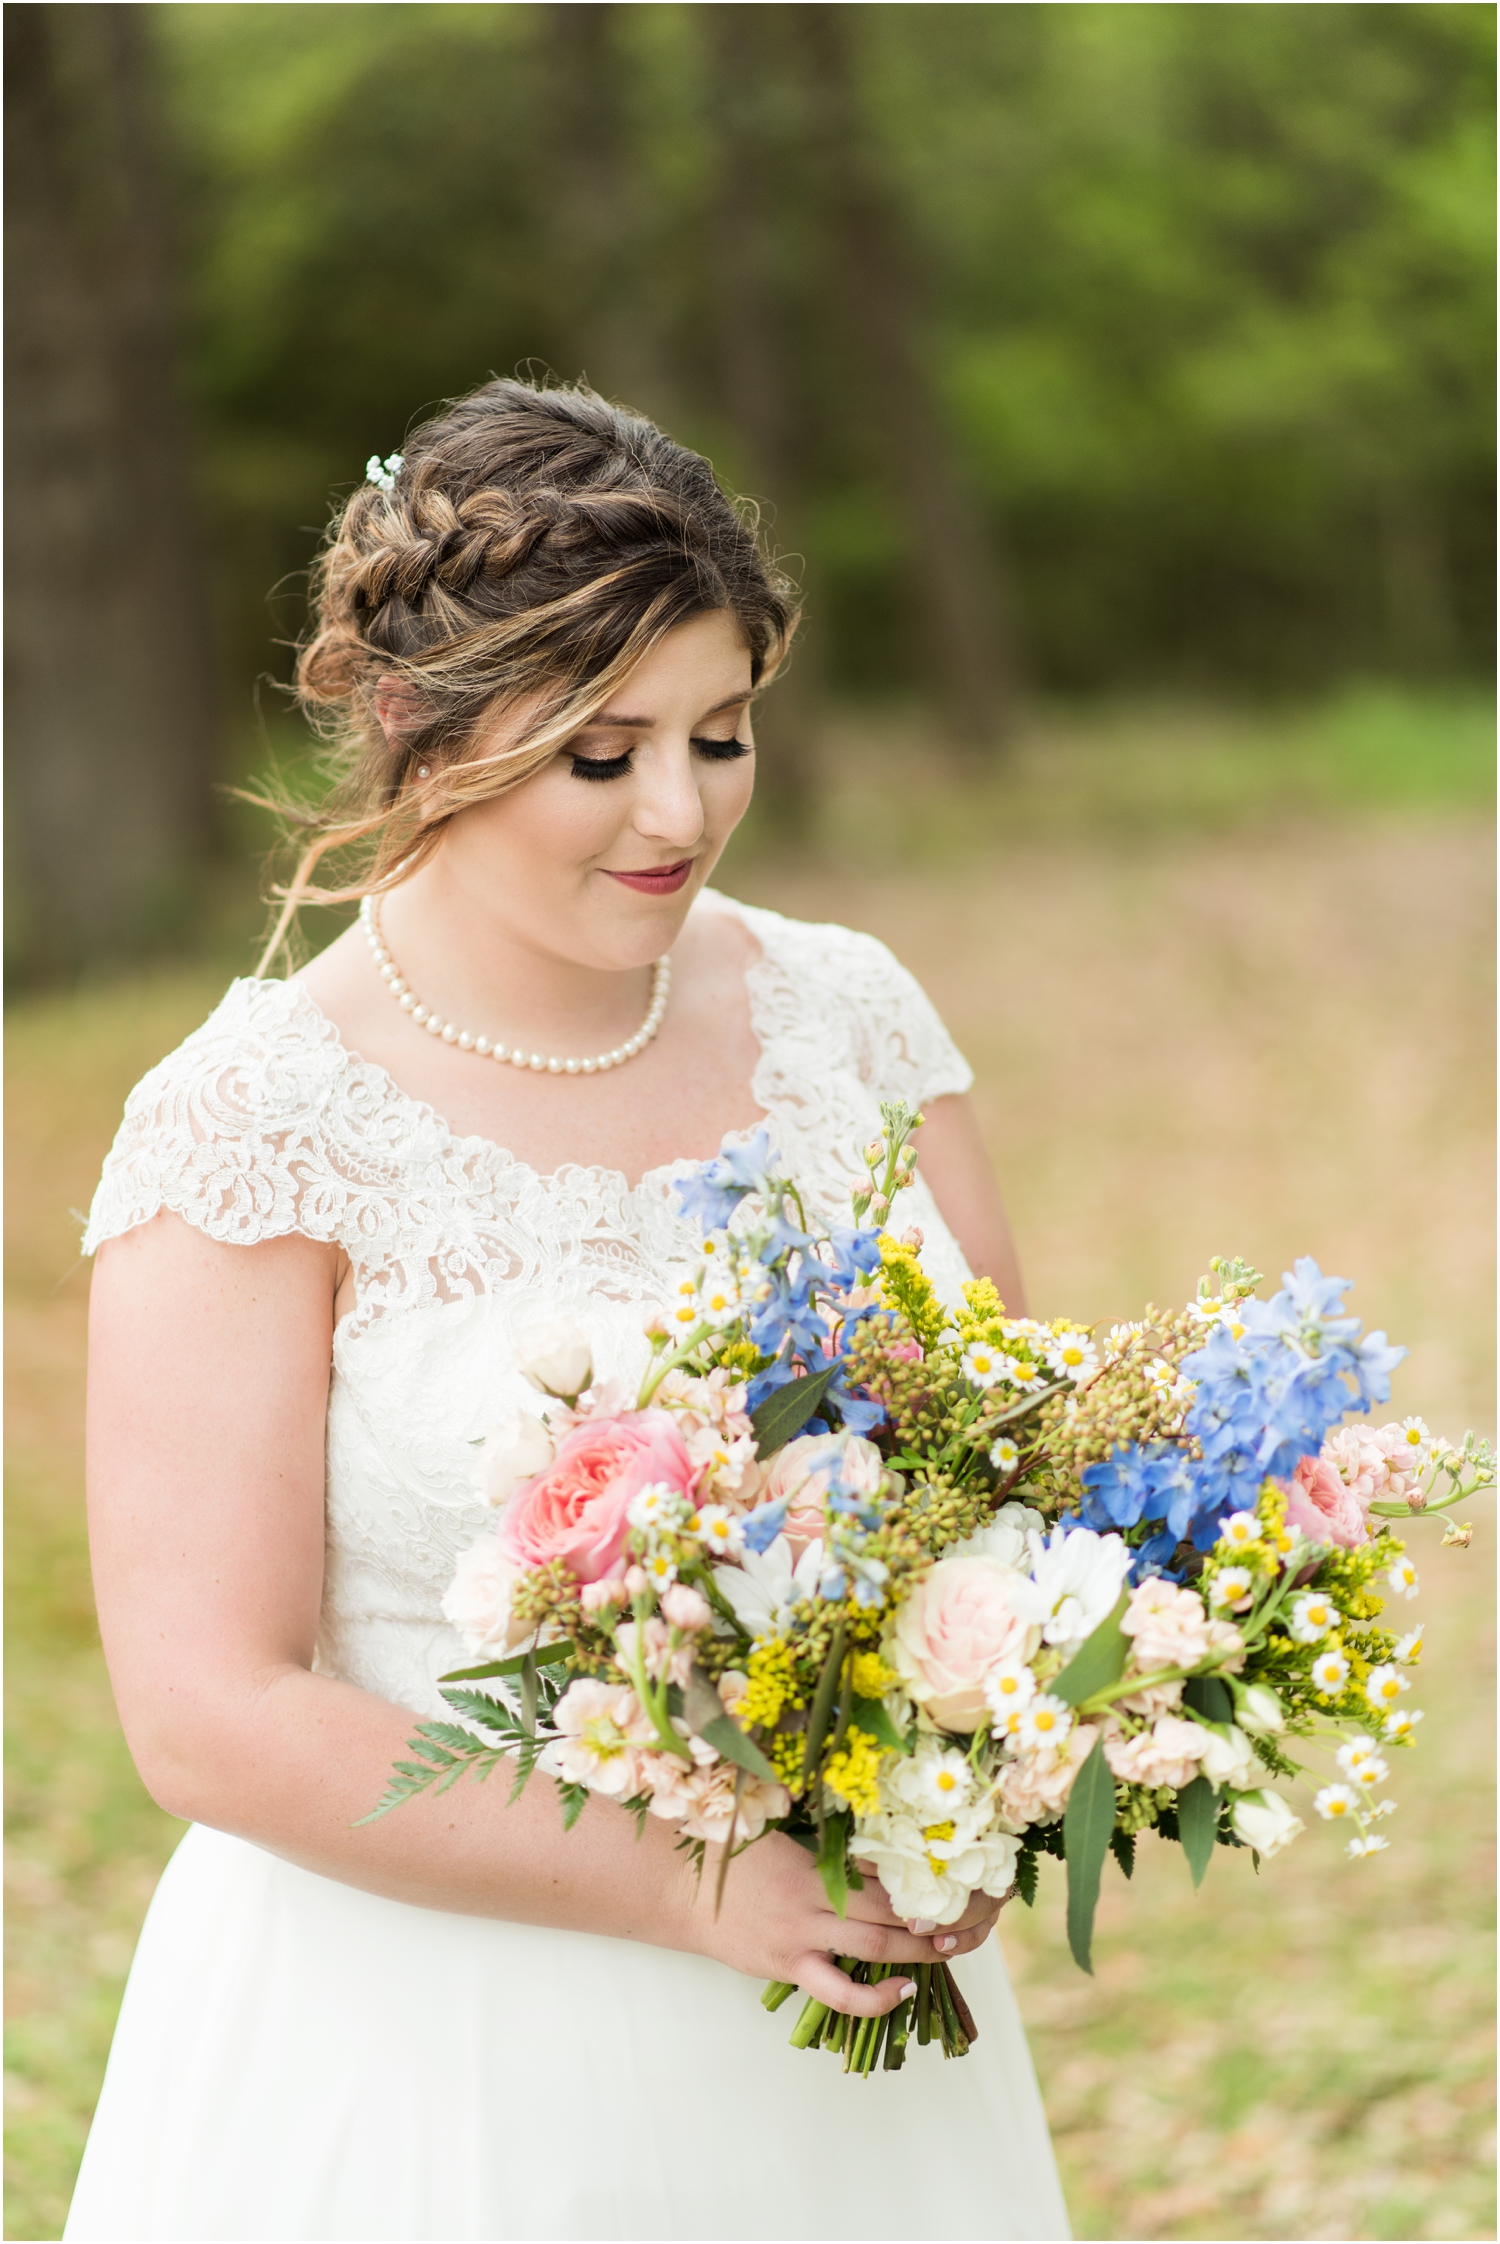 Sowell Farms Milton Florida Rustic Woodsy Barn Wedding Photographer bridal portrait supposey